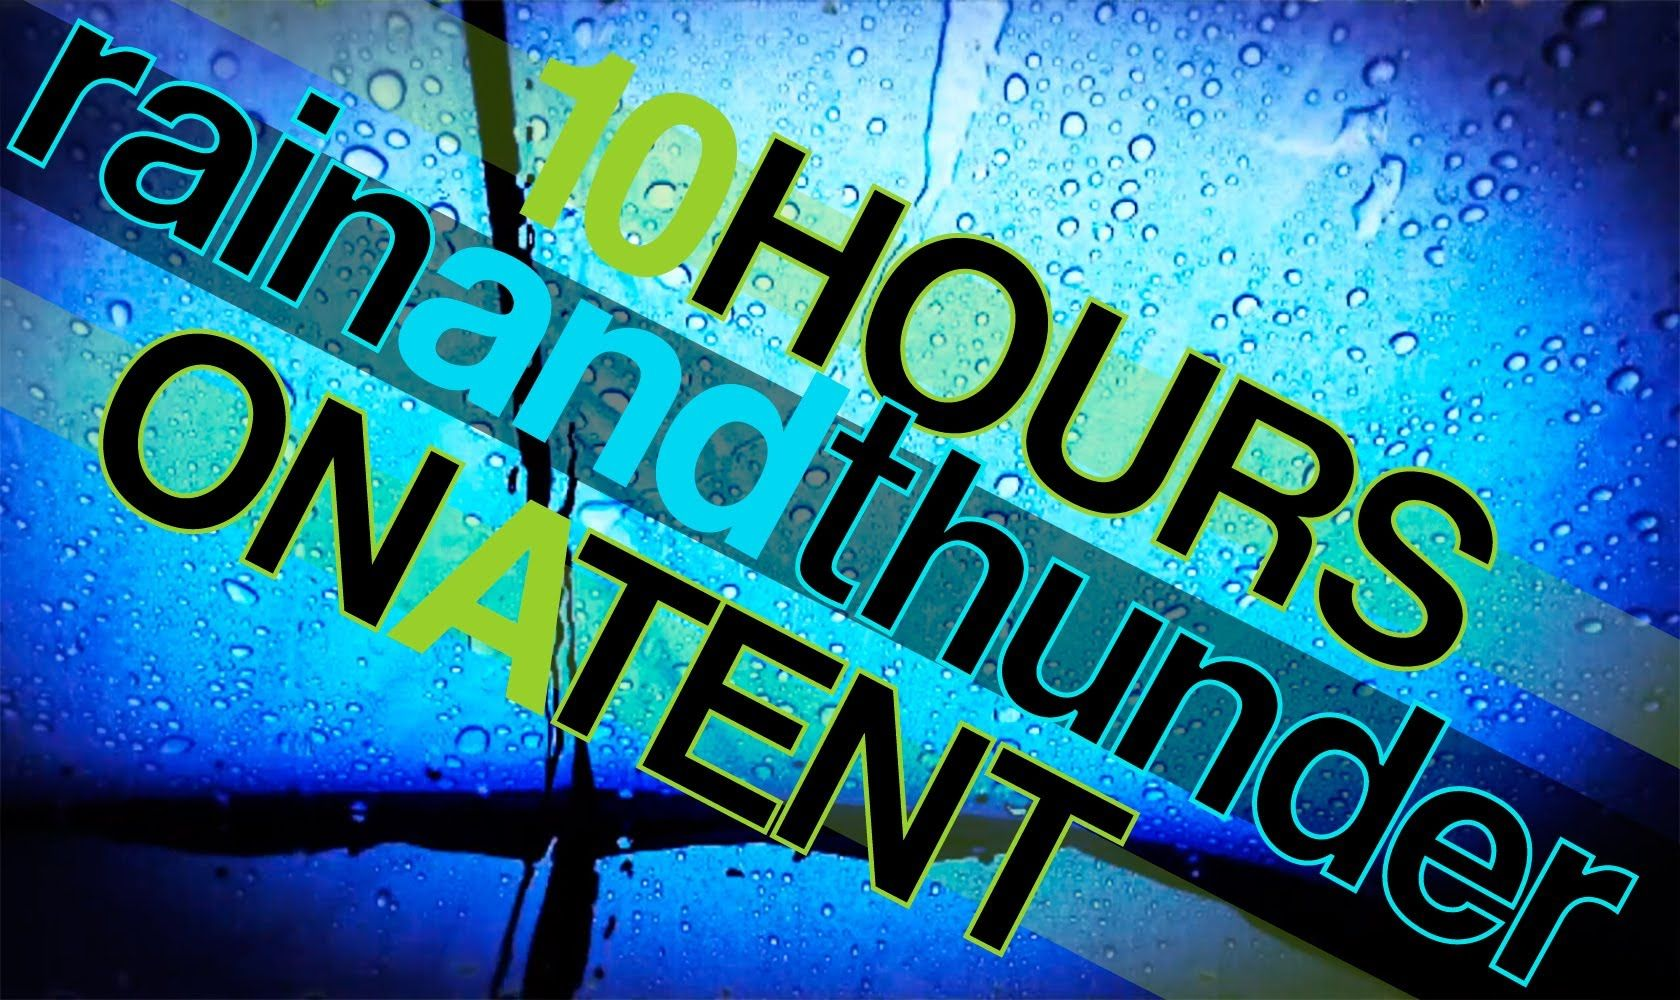 10 Hours Rain and Thunder Sounds on a Tent - Rainfall and Thunderstorm HD  sc 1 st  Pinterest & 10 Hours Rain and Thunder Sounds on a Tent - Rainfall and ...